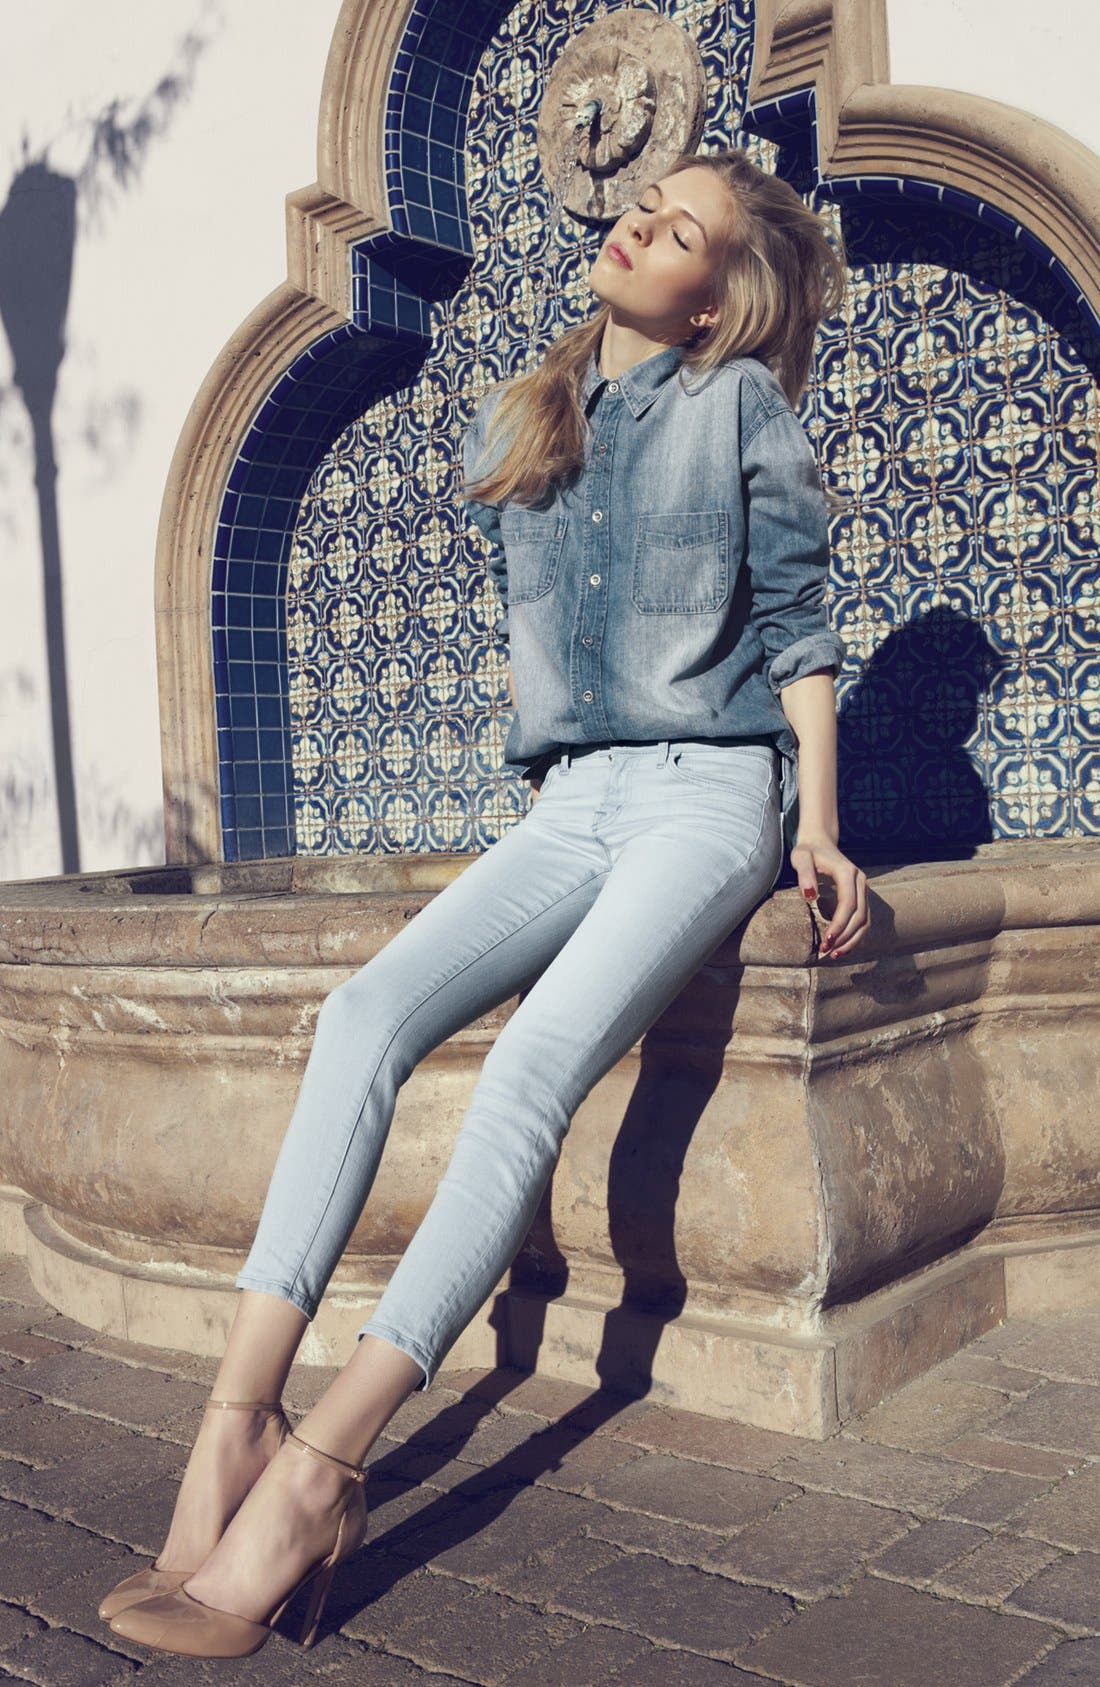 Alternate Image 1 Selected - J Brand Boyfriend Shirt & Cropped Skinny Pants